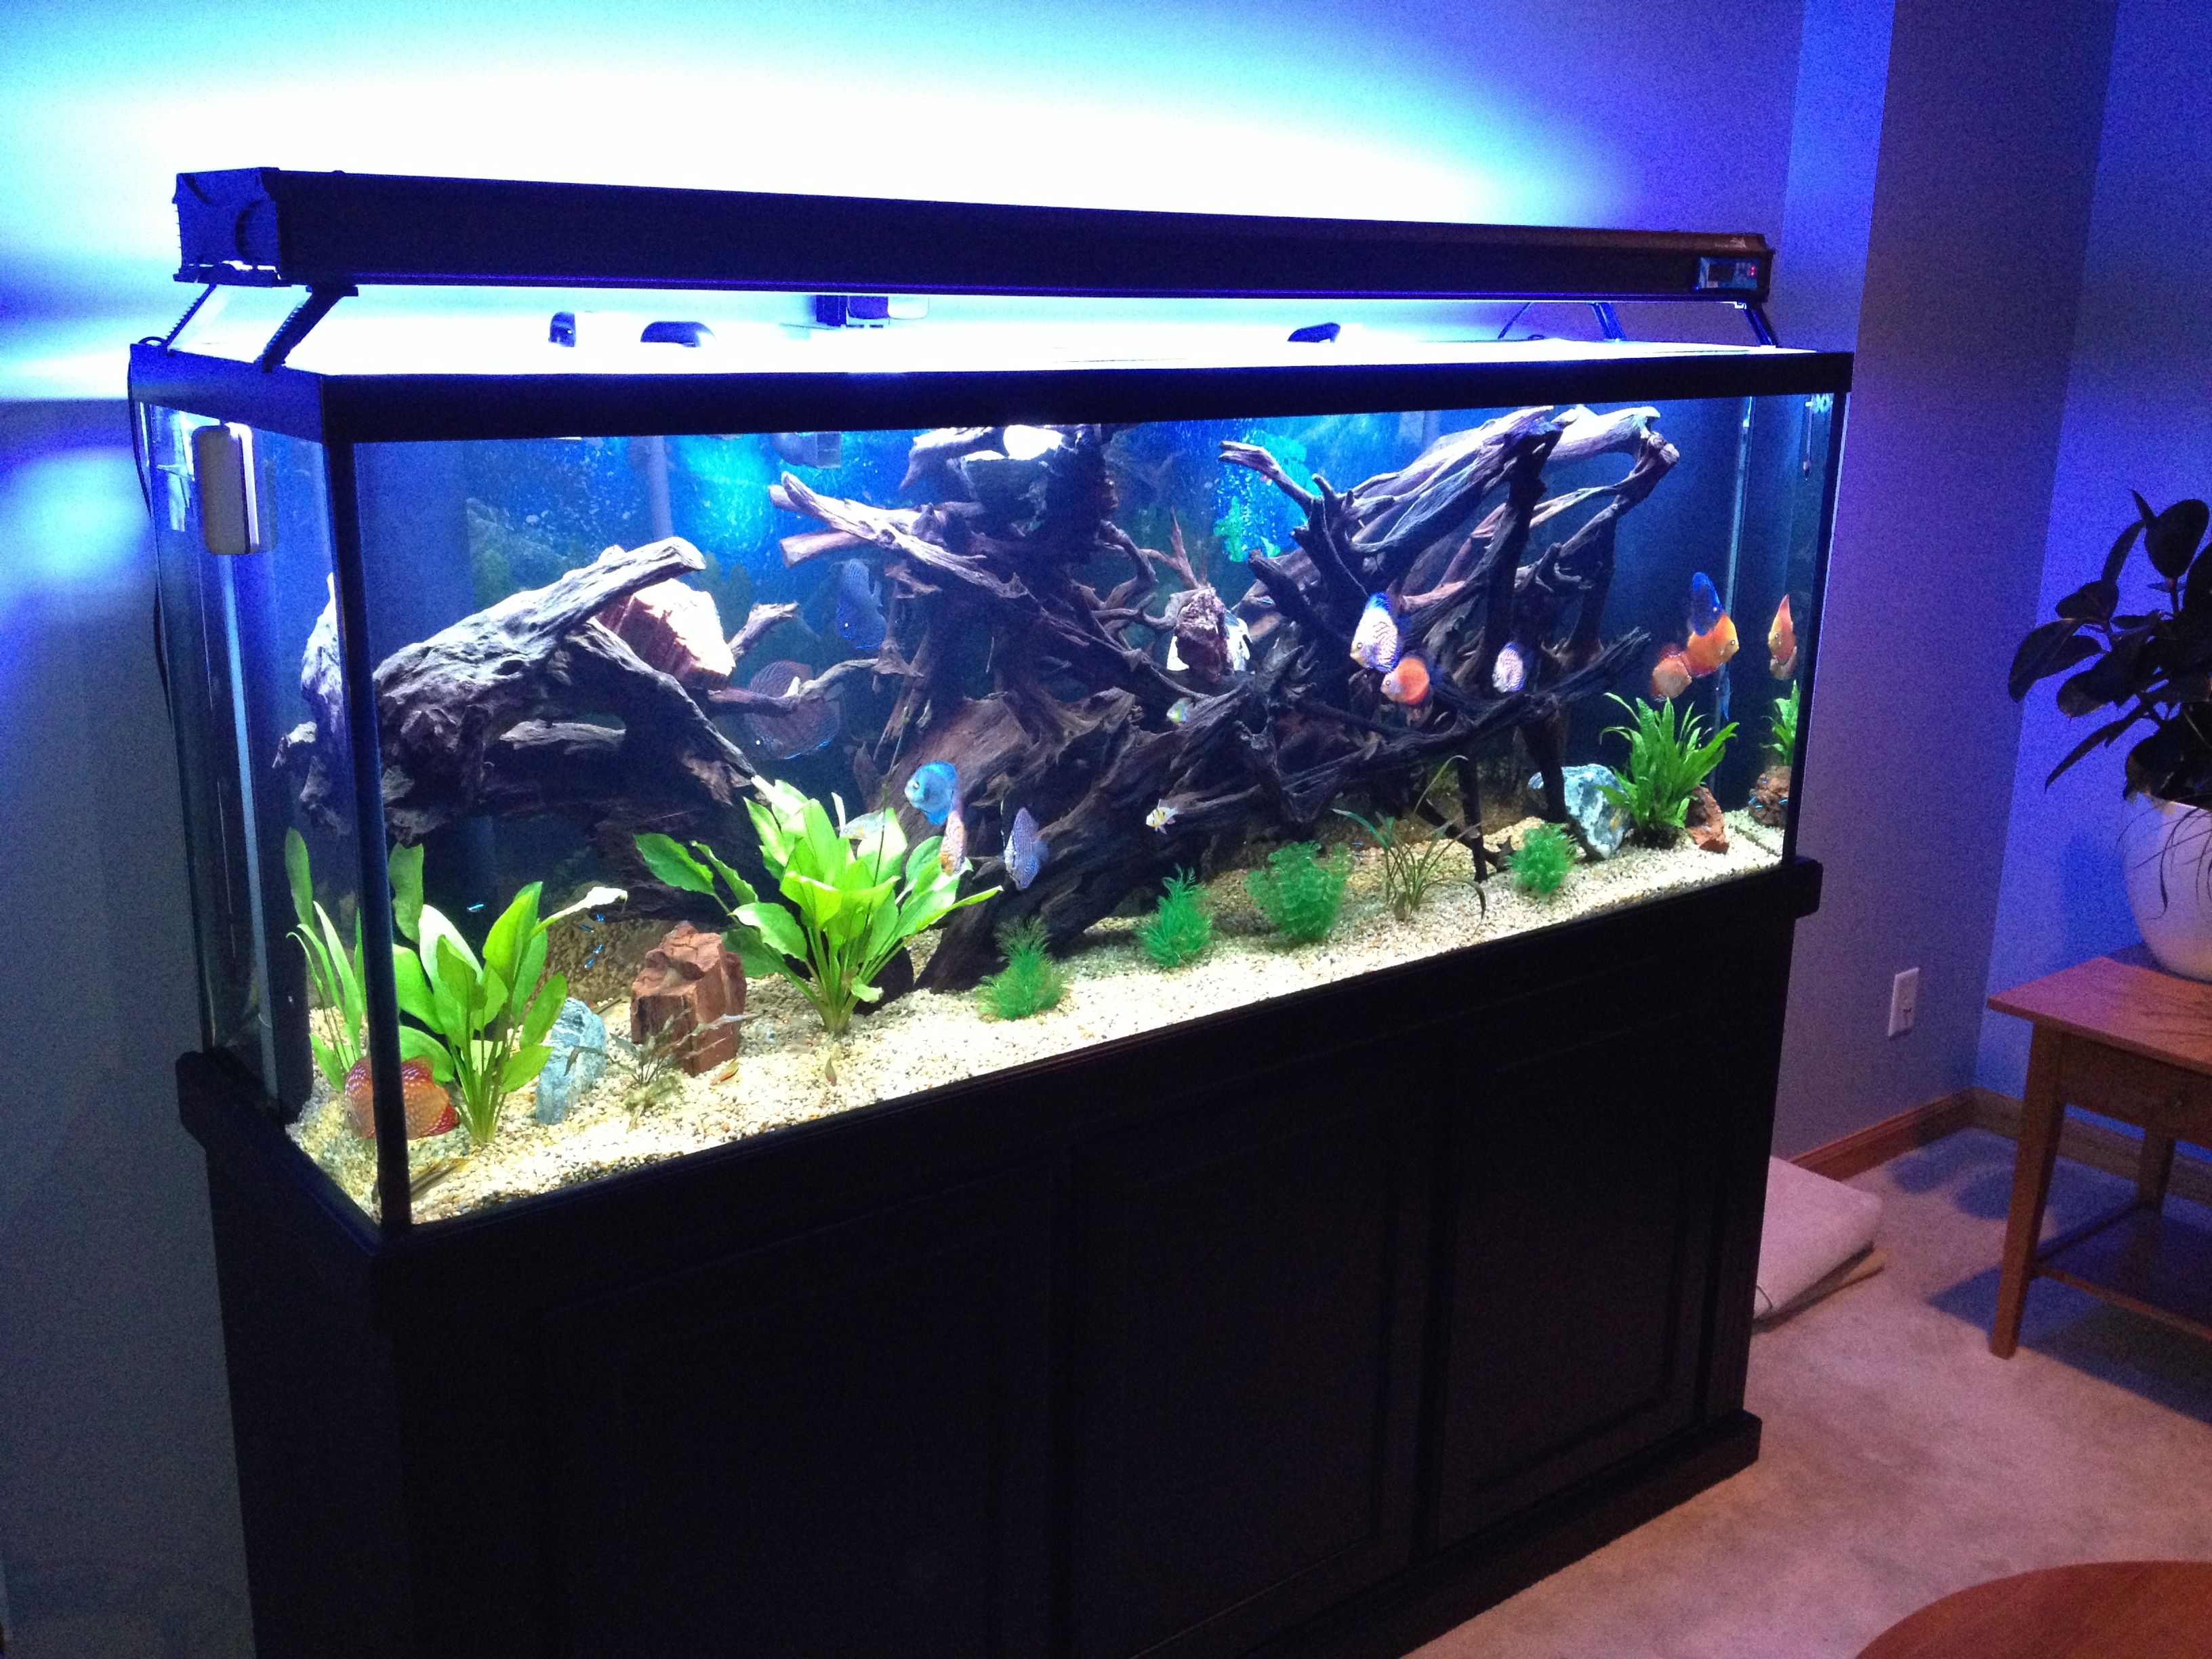 Freshwater fish tank upkeep - 204 Best Images About Fish Tanks On Pinterest Cichlids Aquascaping And Aquarium Ornaments